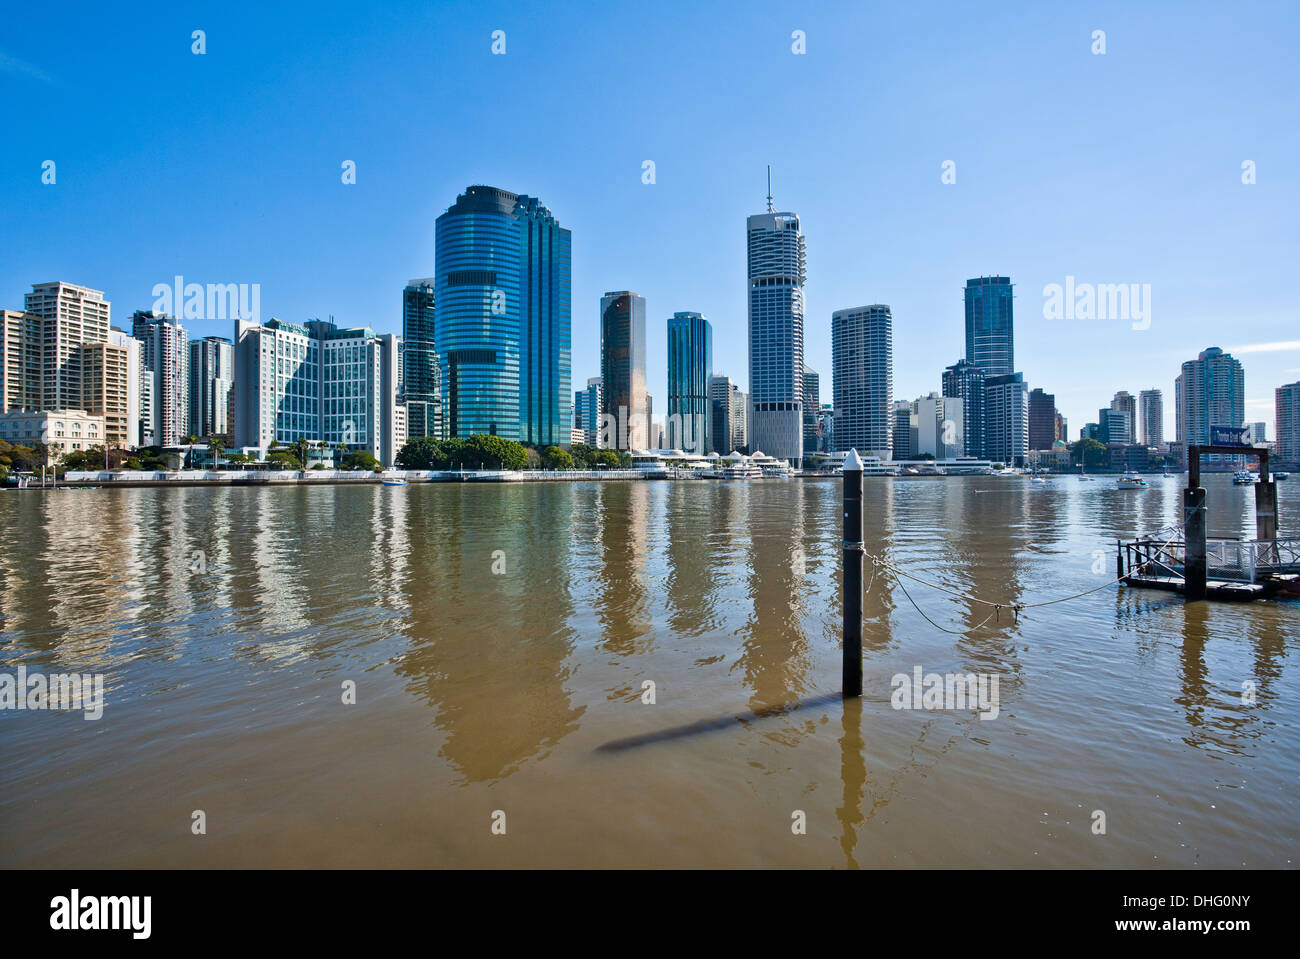 Australia, Queensland, Brisbane, view of the city skyline across Brisbane River - Stock Image